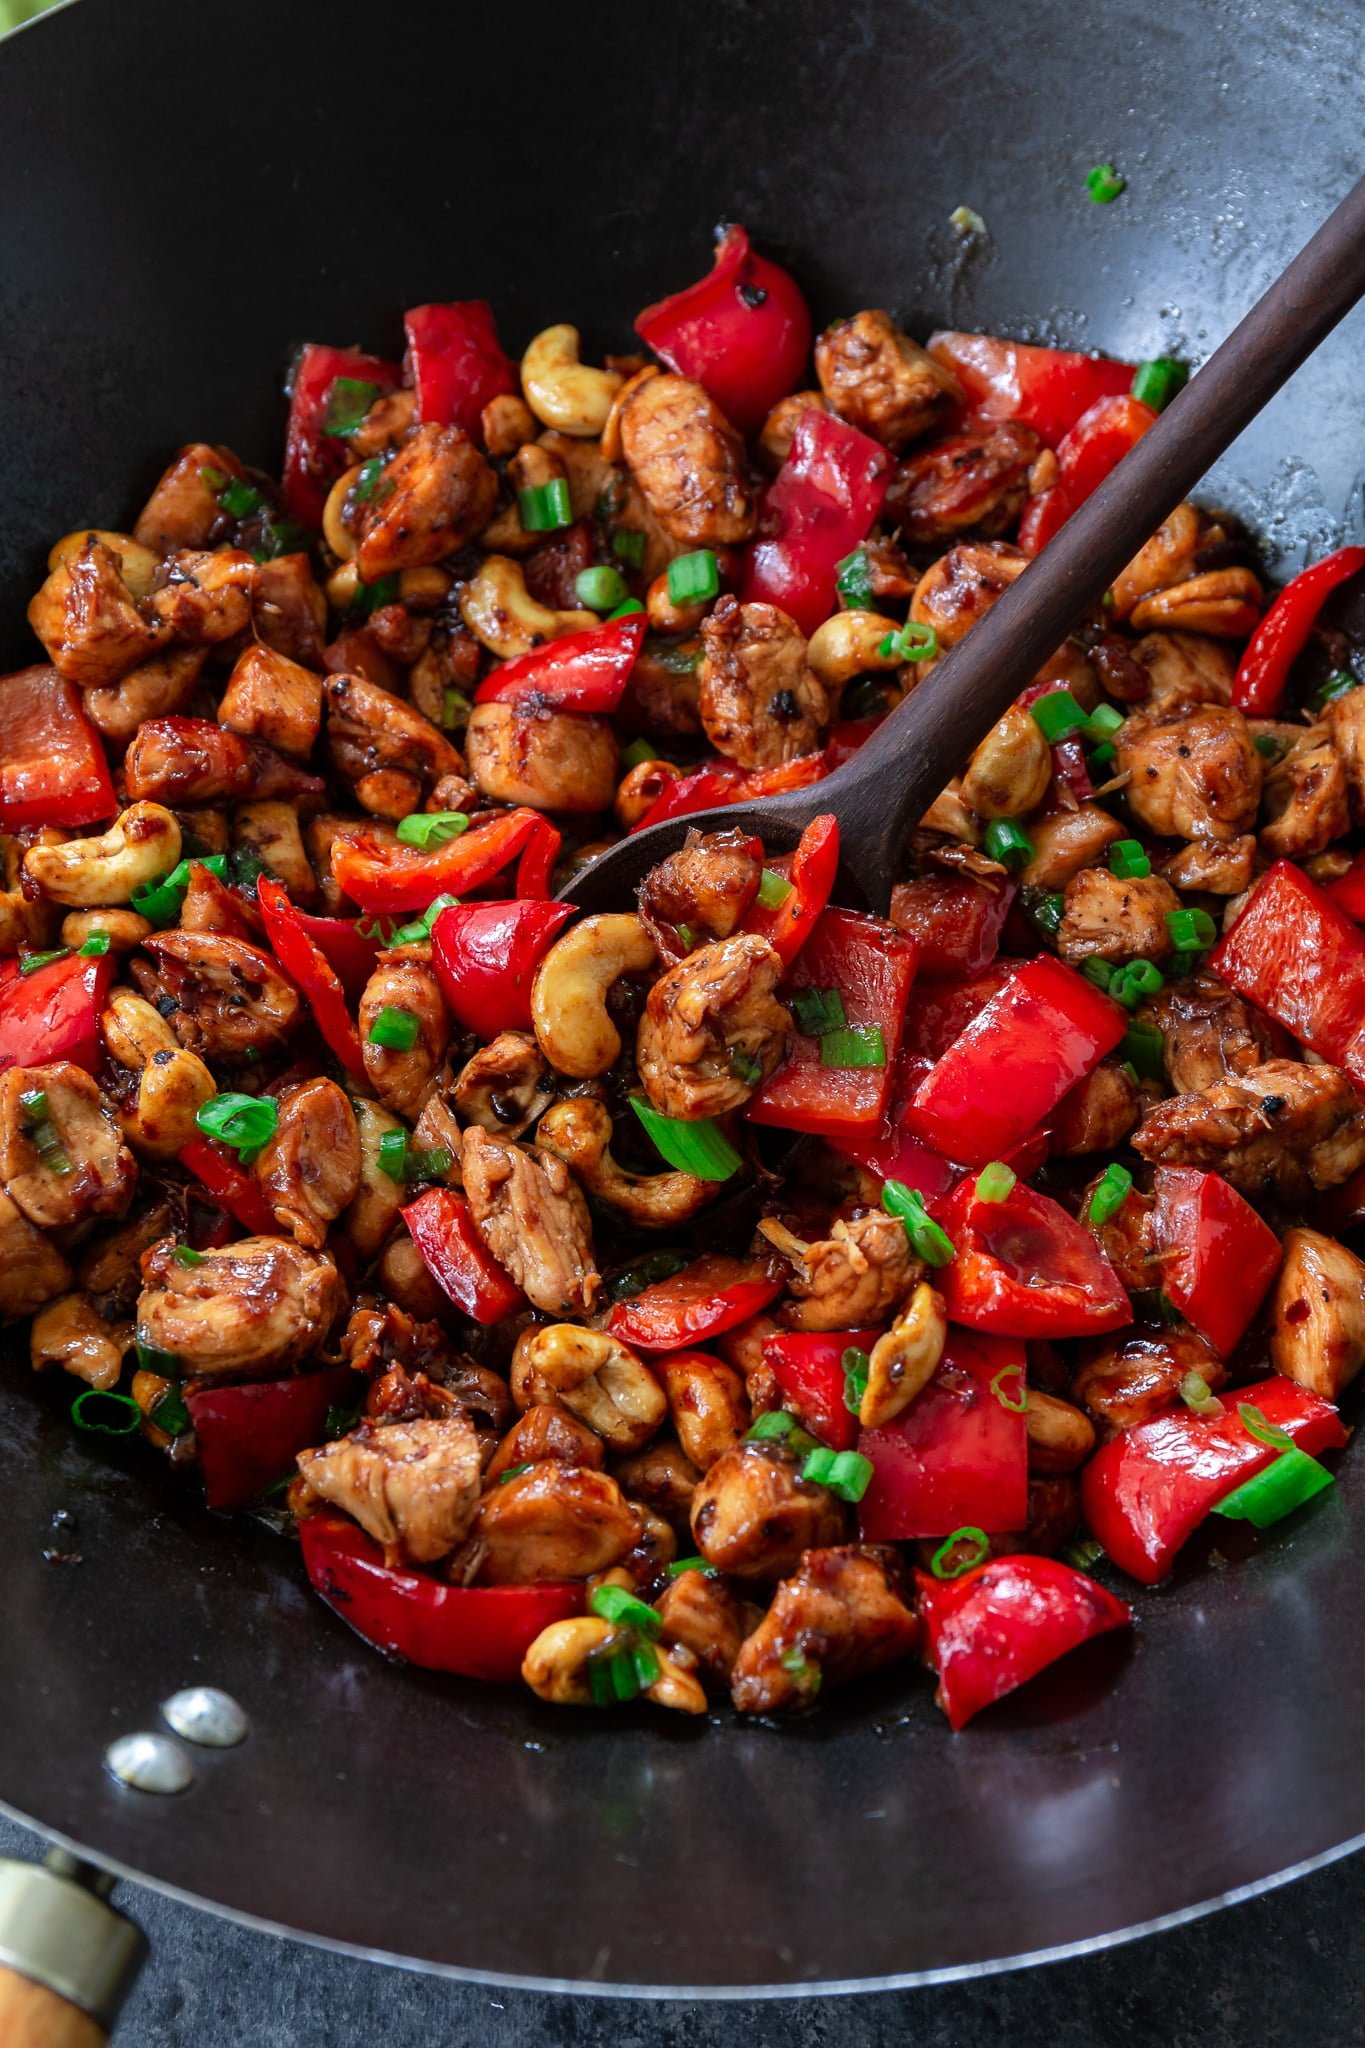 Meal Prep Cashew Chicken | www.oliviascuisine.com | Who needs takeout when you can cook delicious Cashew Chicken at home? Tender chicken, scallions and peppers coated in a rich, sweet sauce and topped with crunchy cashews. I can't get enough of it! (Recipe and food photography by @oliviascuisine.)